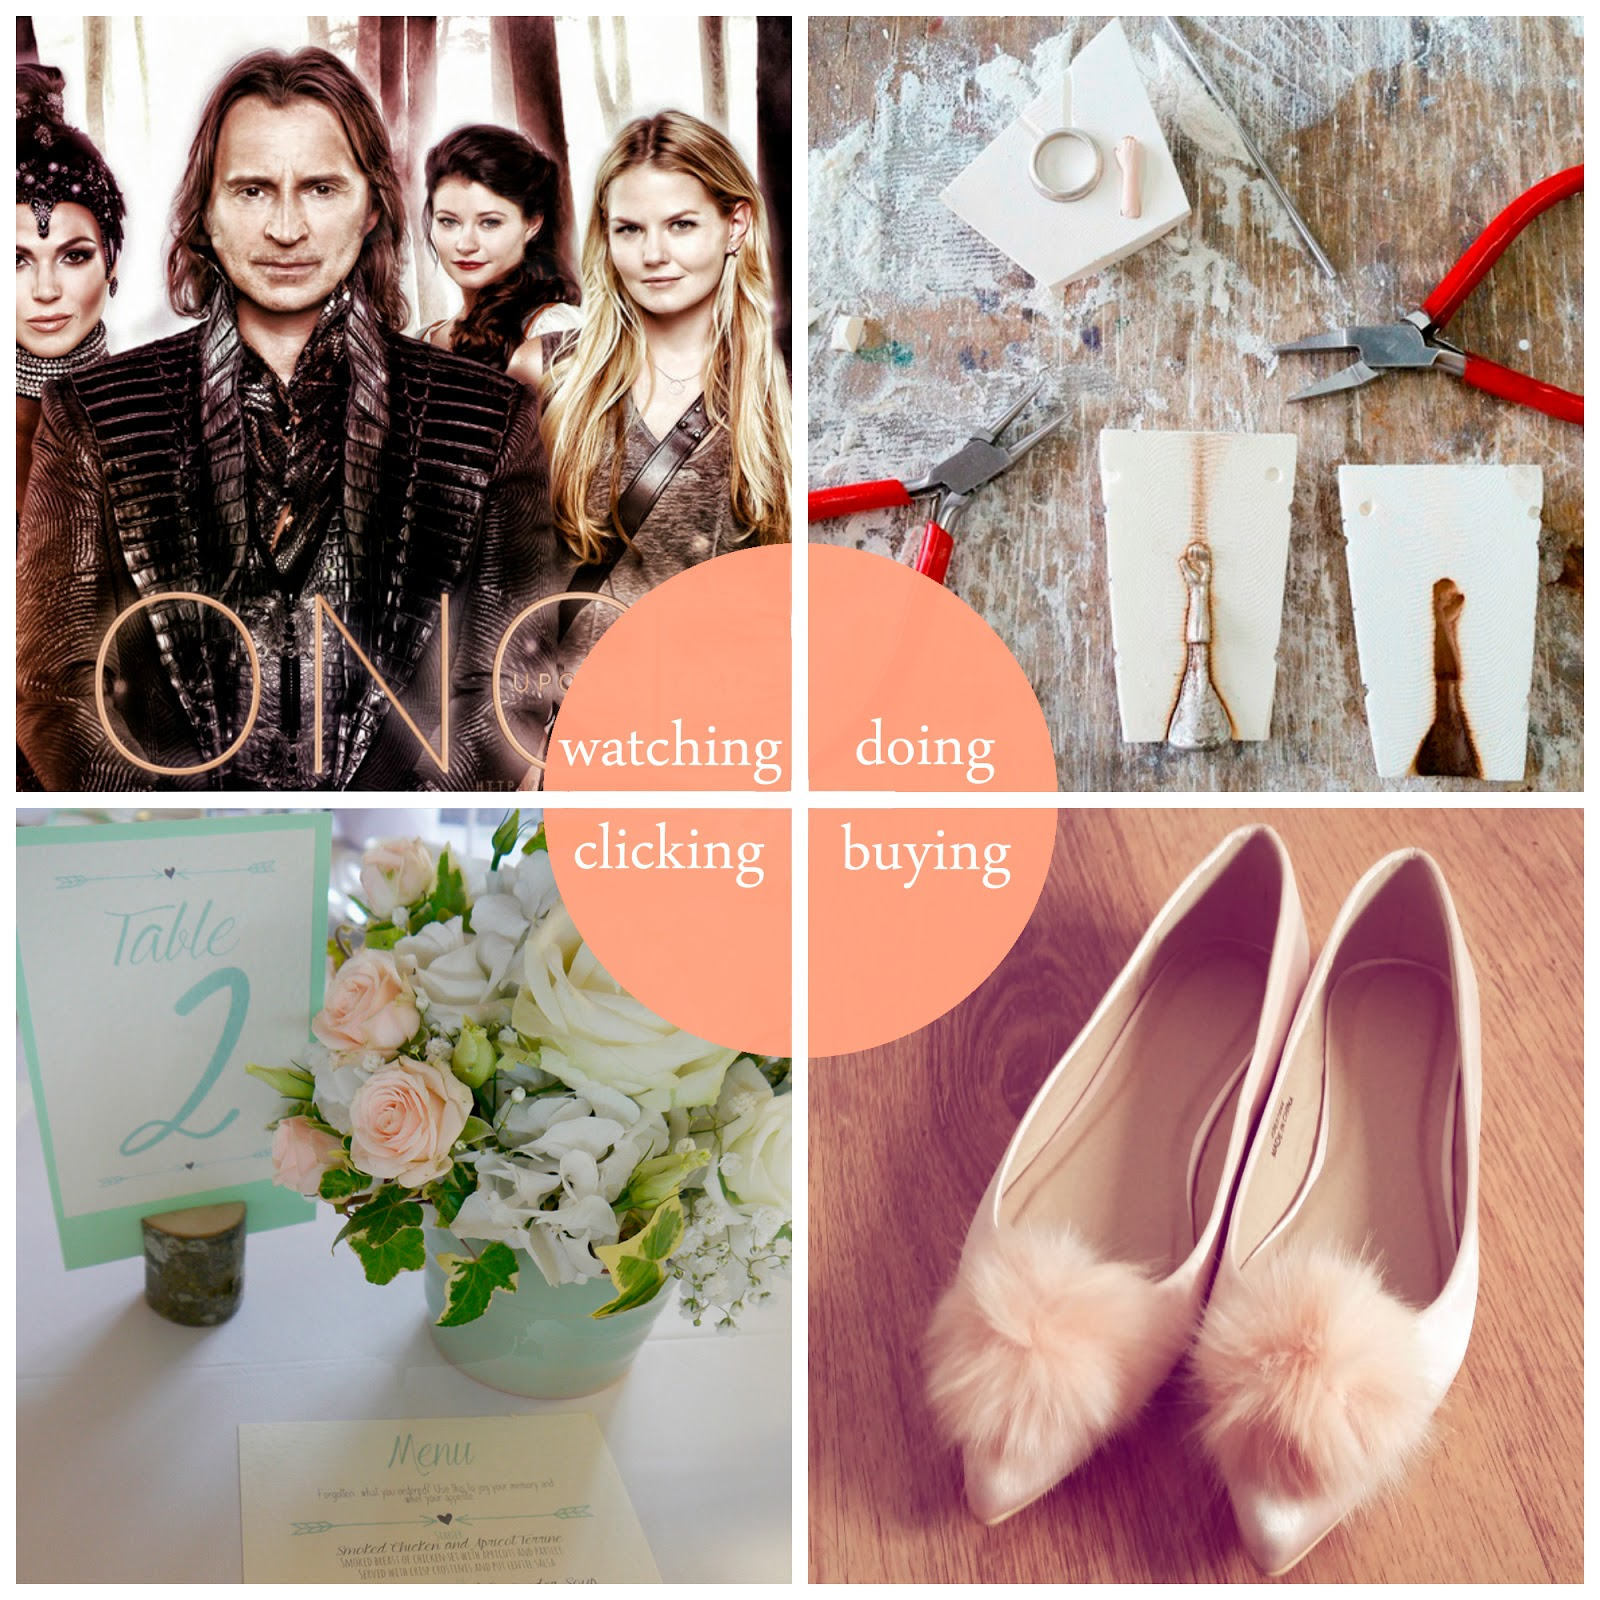 round up, July, best bits, Once Upon a Time, jewellery class, summer school, DJCAD, jewellery making, lost wax casting, ASOS pom pom shoes, pom pom flats, wedding stationery, pinterest